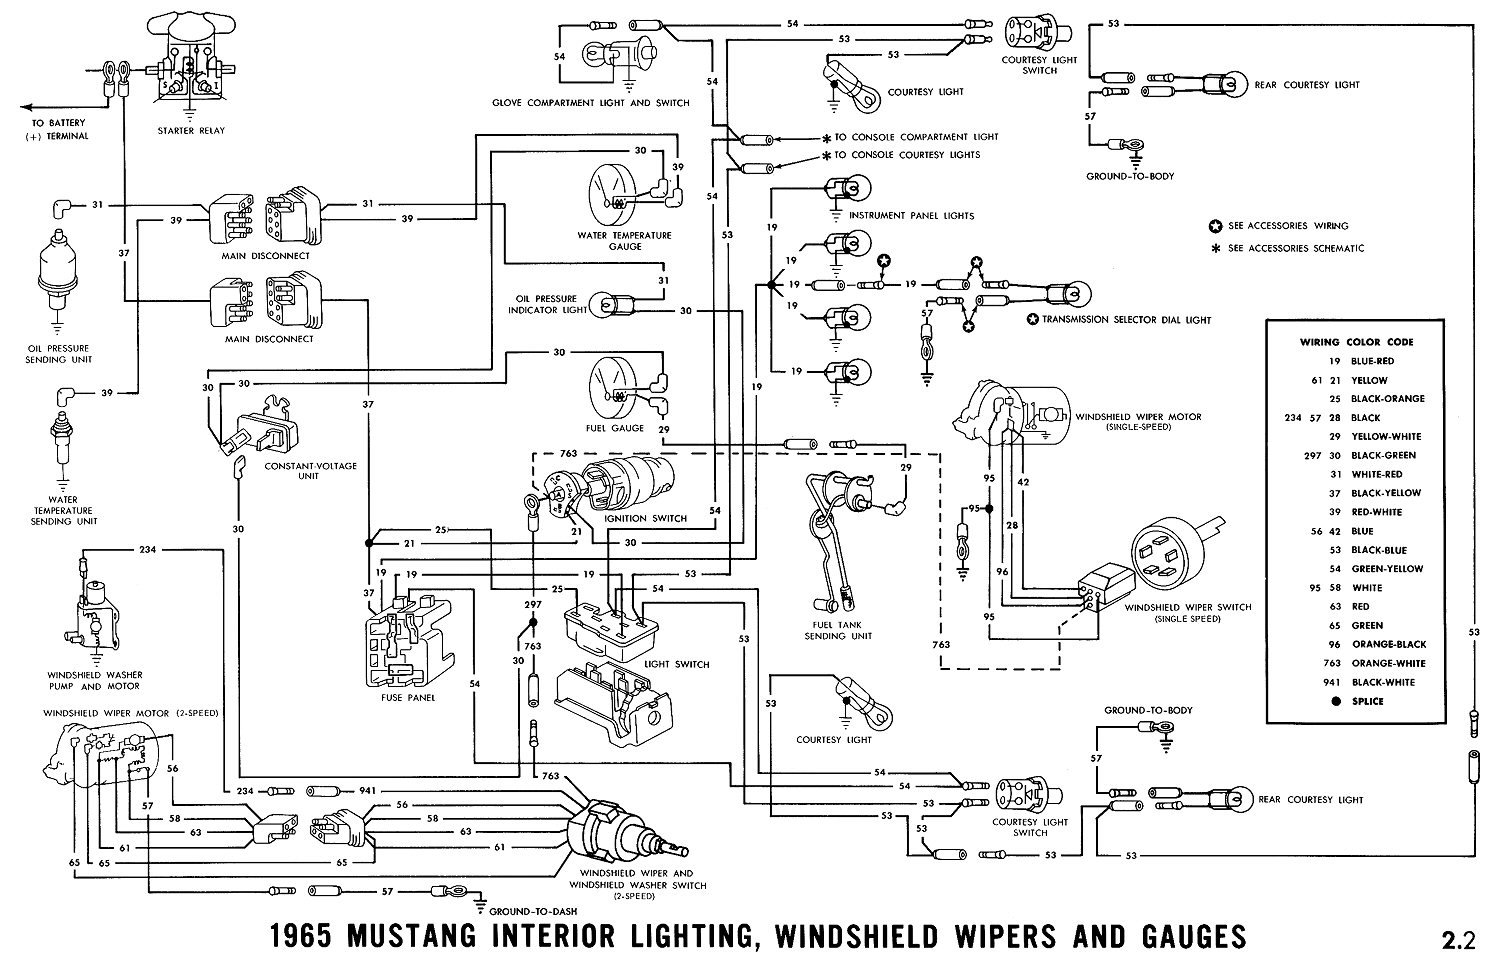 354697d1402370433 1970 mustang installing new radiator no temperature sensor interior lighting gauges wiring diagram for 1972 ford f100 the wiring diagram F100 Wiring Diagram at gsmx.co